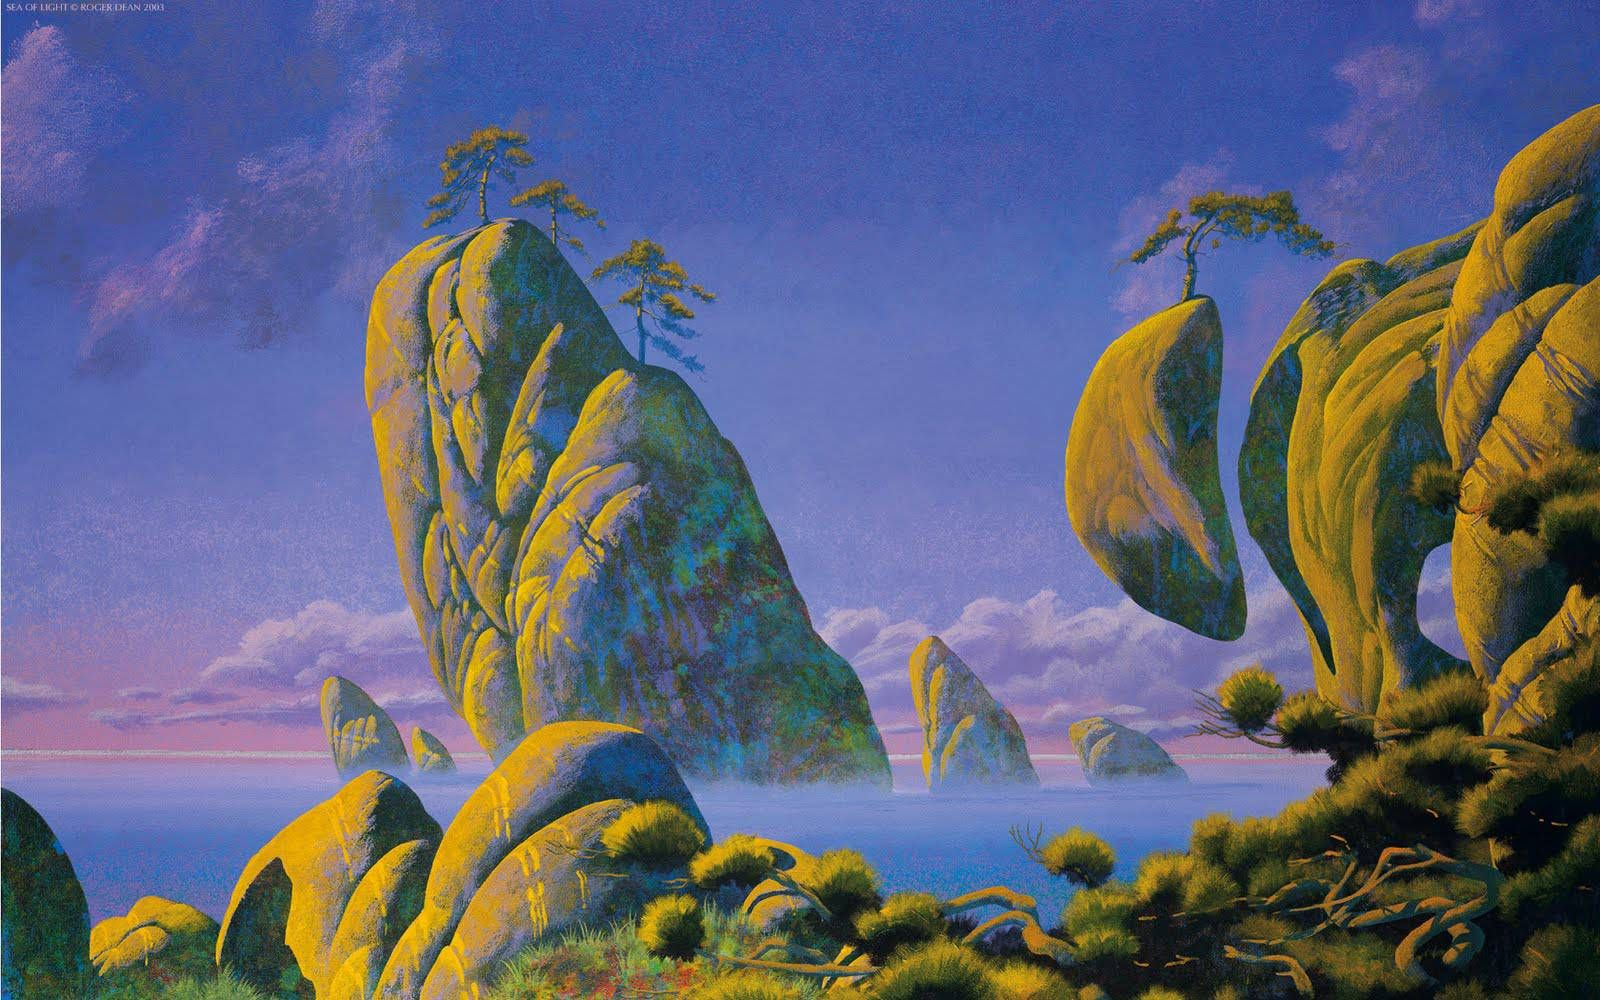 pics for gt roger dean wallpaper